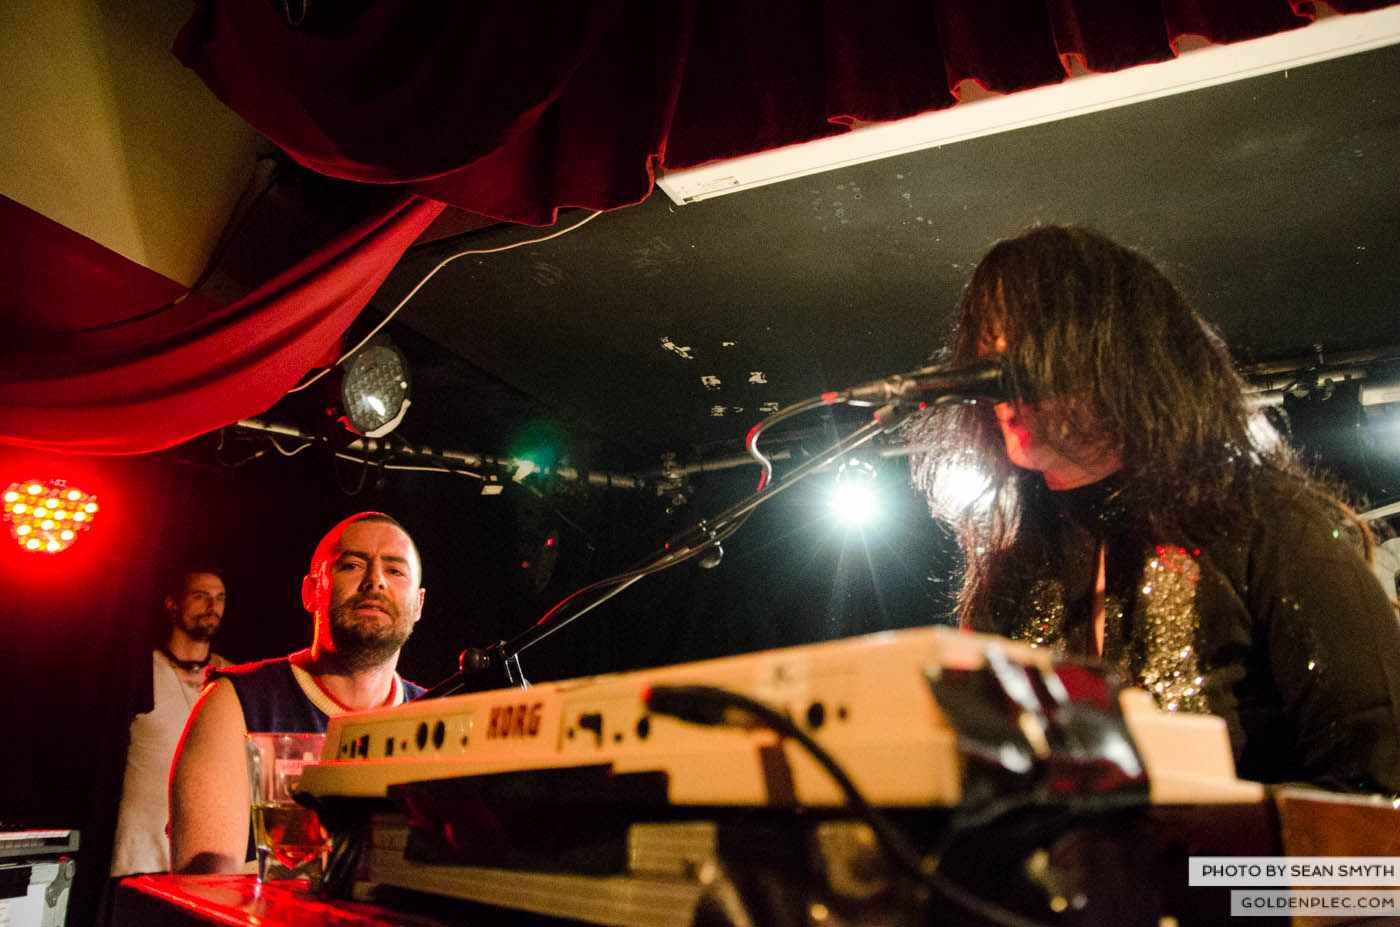 fight-likes-apes-at-whelans-by-sean-smyth-20-12-14-28-of-34